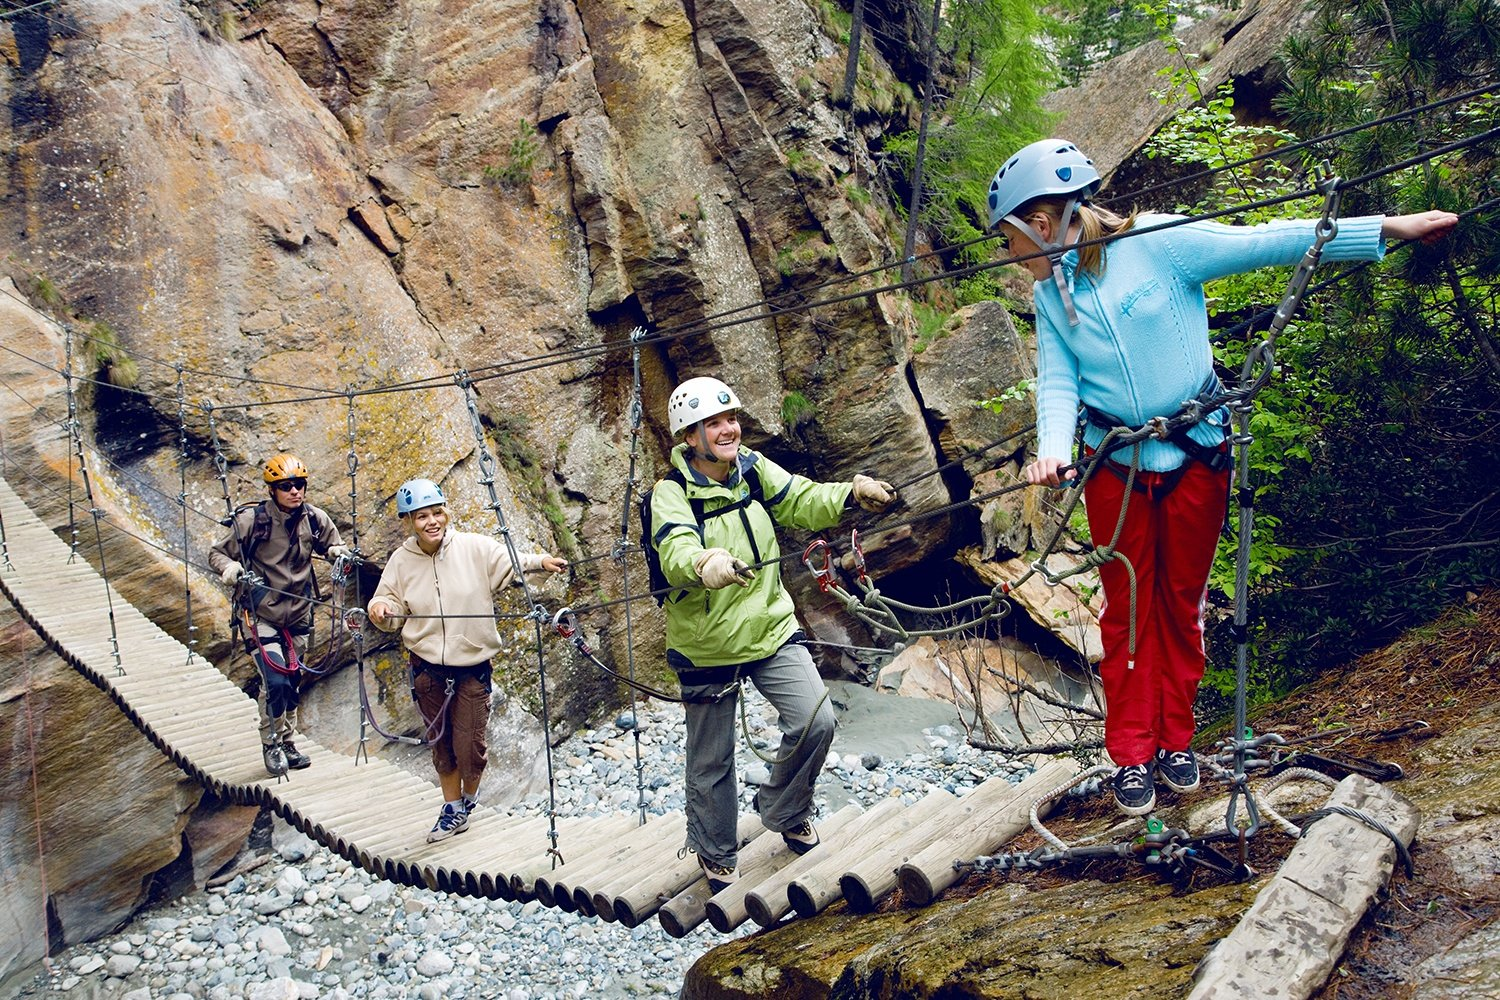 The adventure tour takes you through the gorge between Saas-Fee and Saas-Grund. Using Zip Line, rope bridges, ladders and ropes to traverse the Fee Gorge. Imagine canyoning without water!